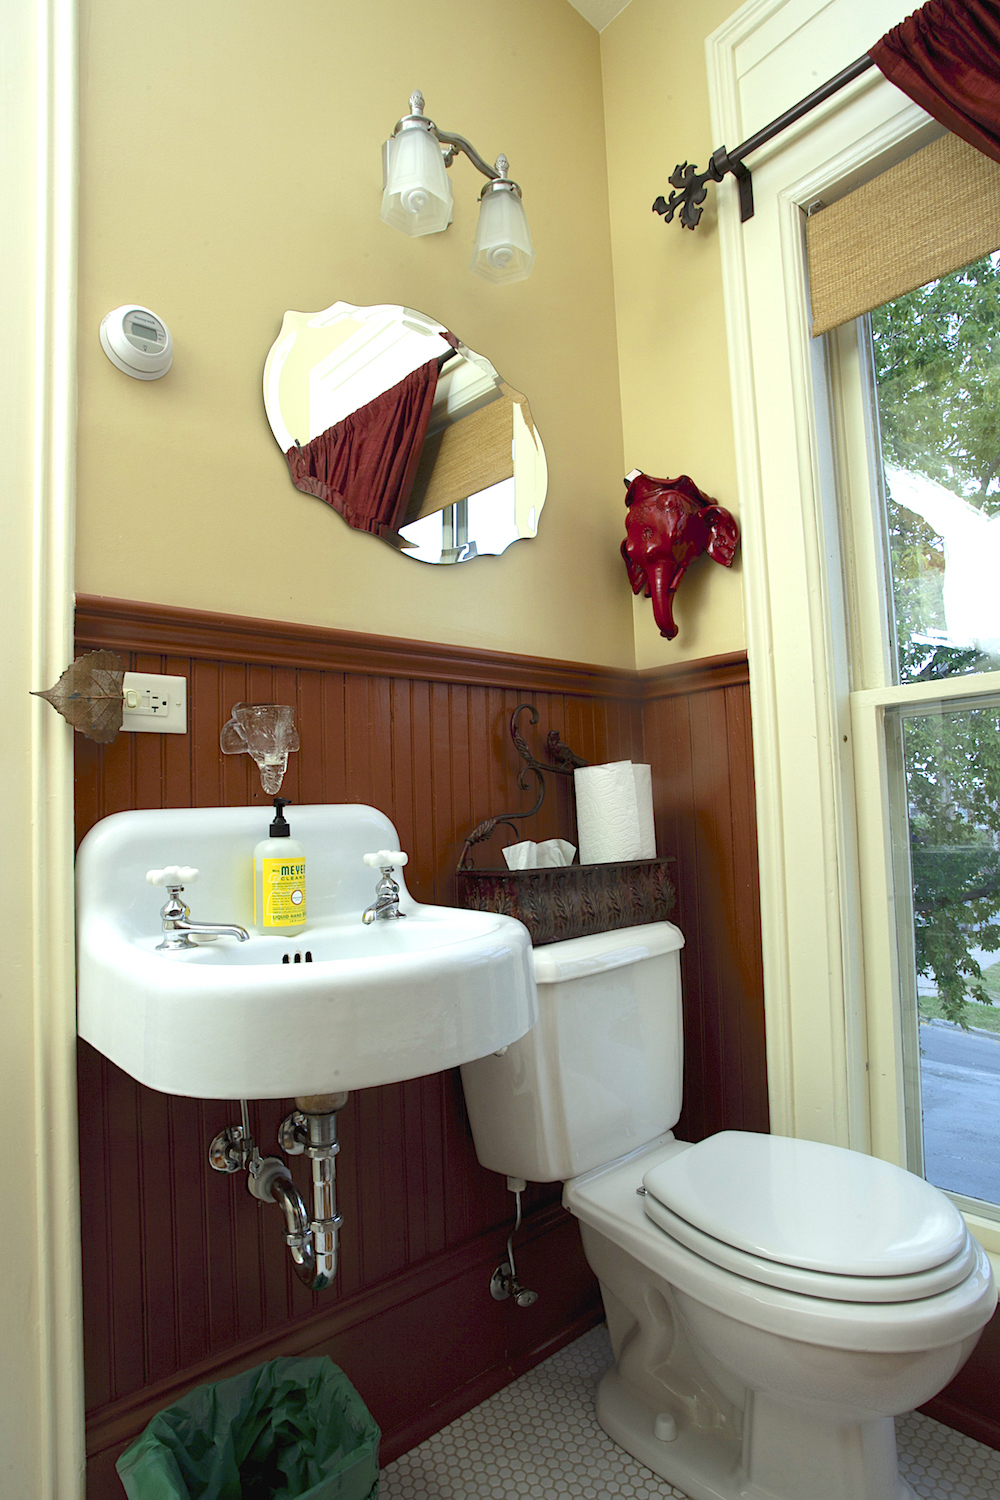 Harmonius Bathroom 3.jpg